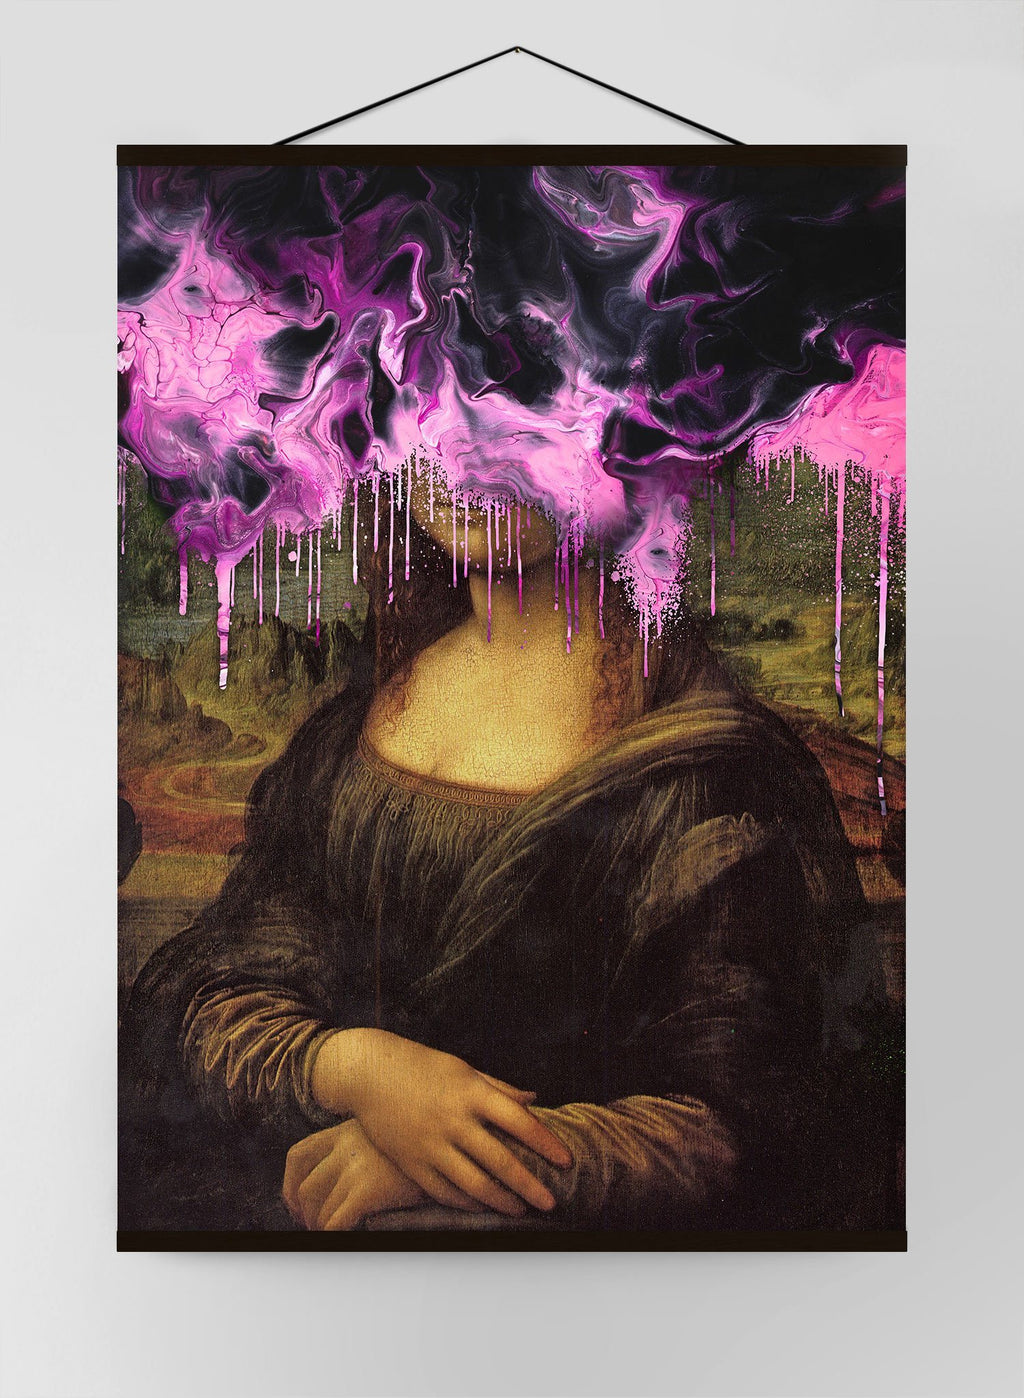 Drippy Mona Lisa Graffiti Pink Gloop Canvas Print